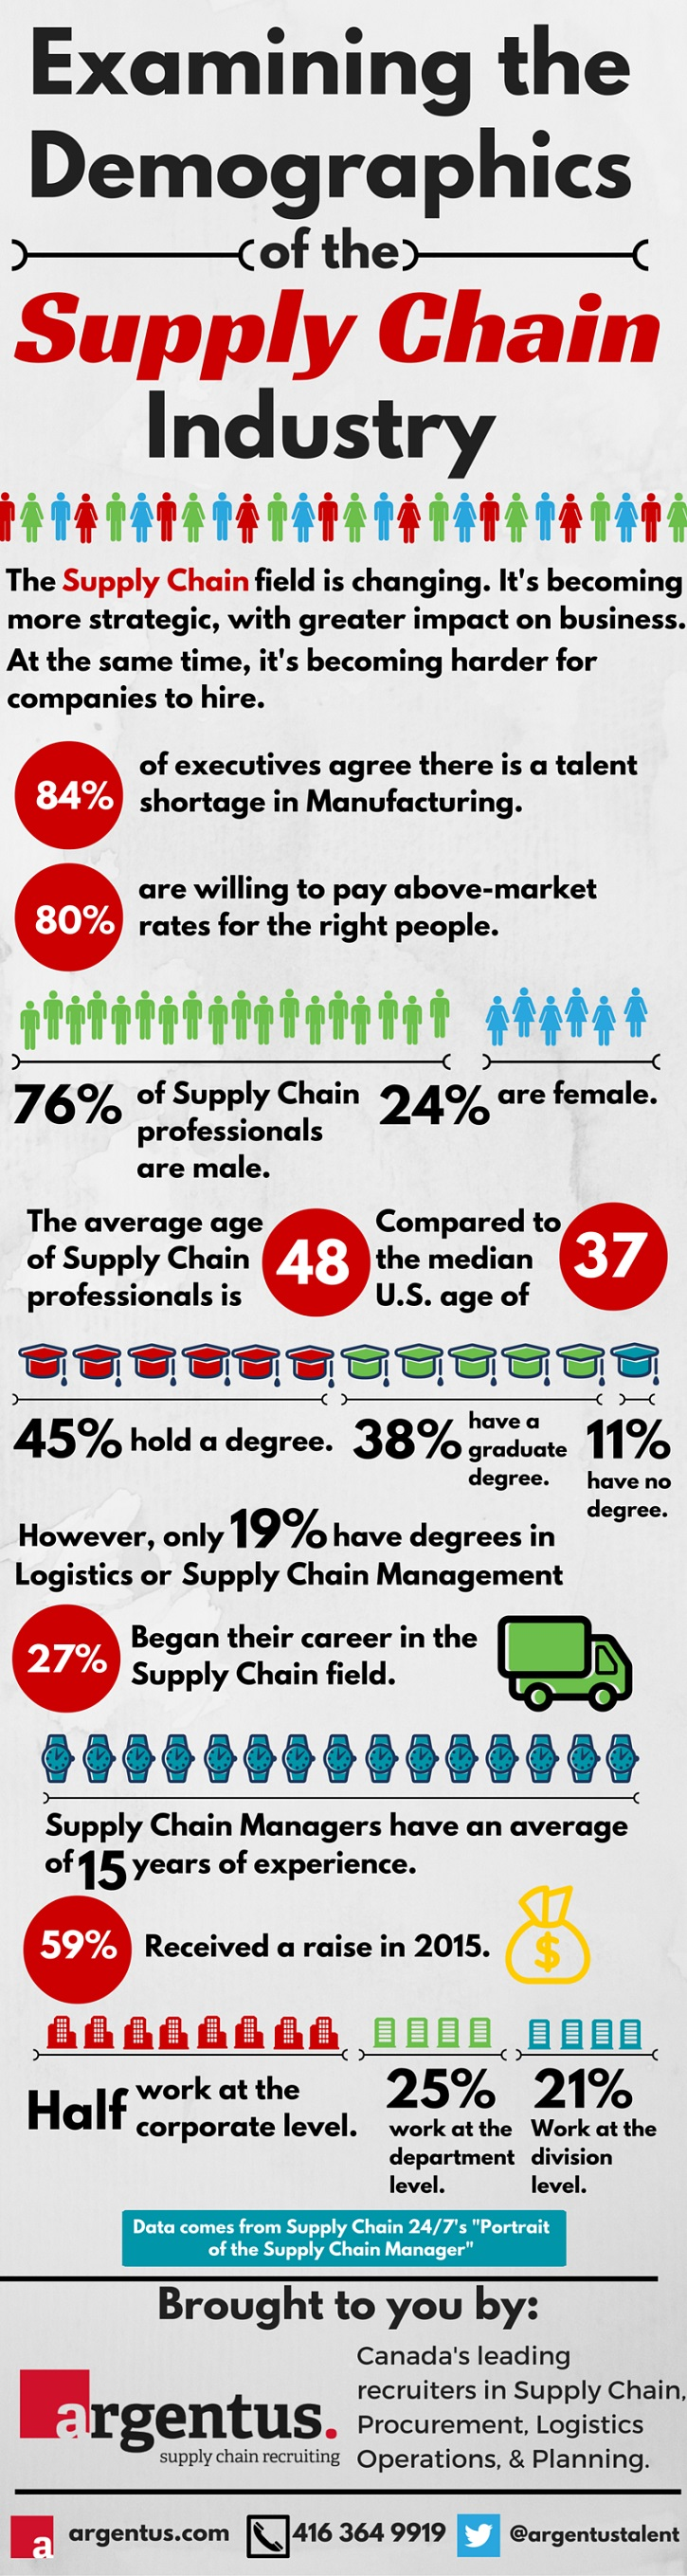 Supply Chain Demographics